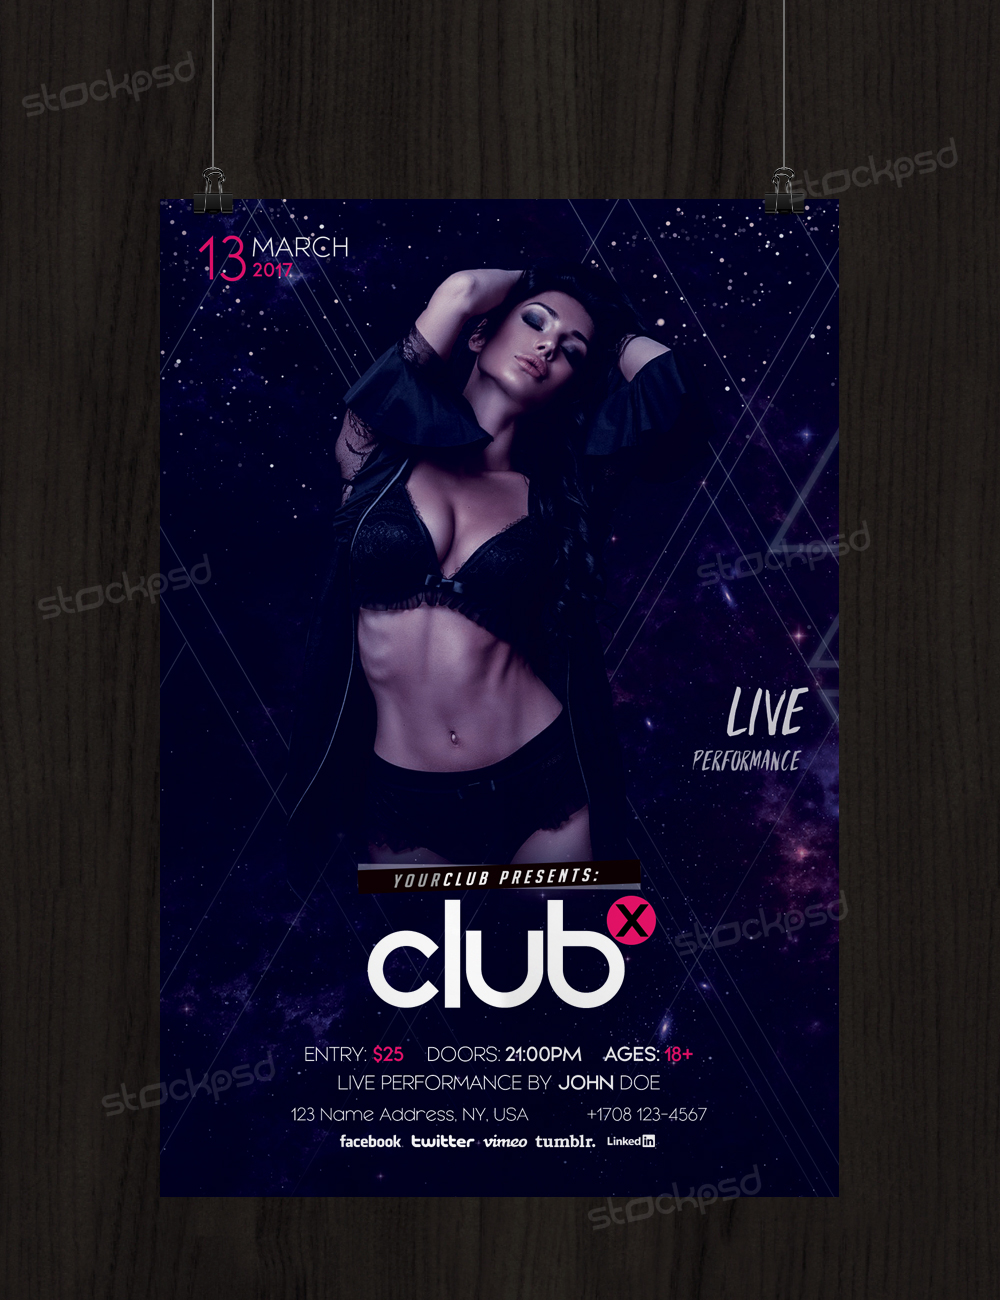 Club X Free Flyer Template Psd by stockpsd on DeviantArt